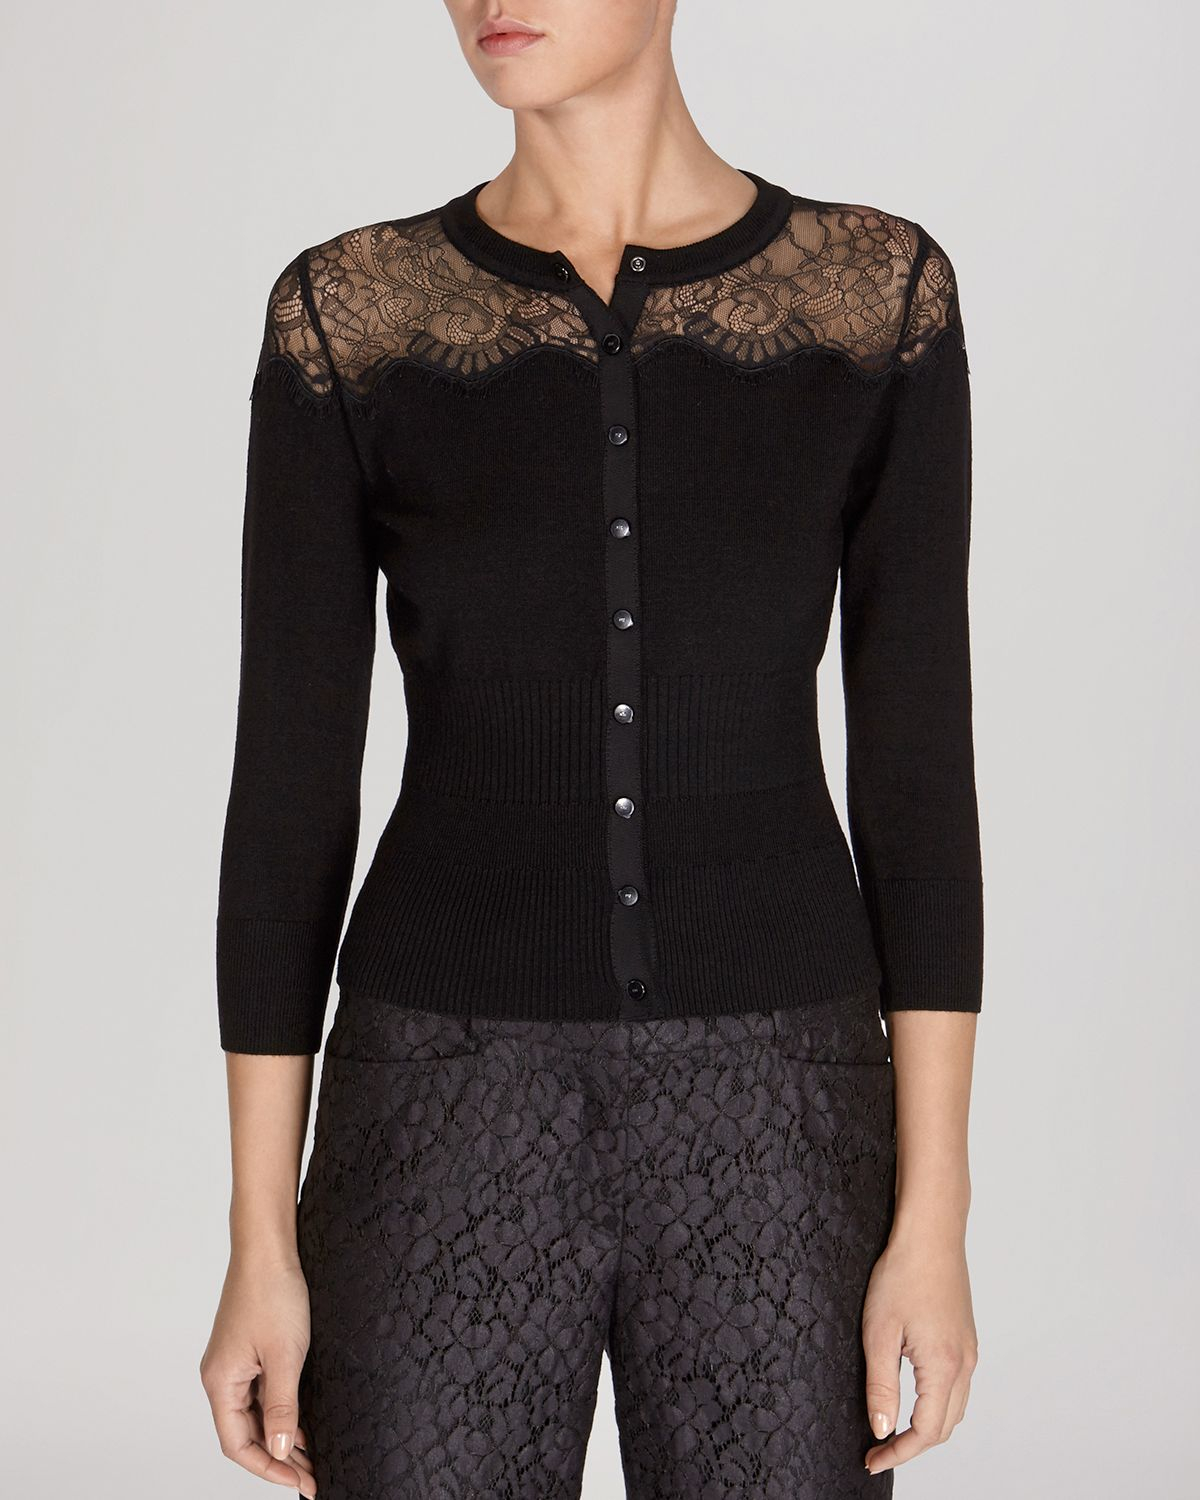 Karen millen Cardigan - Sheer Lace Yoke Knit Collection in Black ...